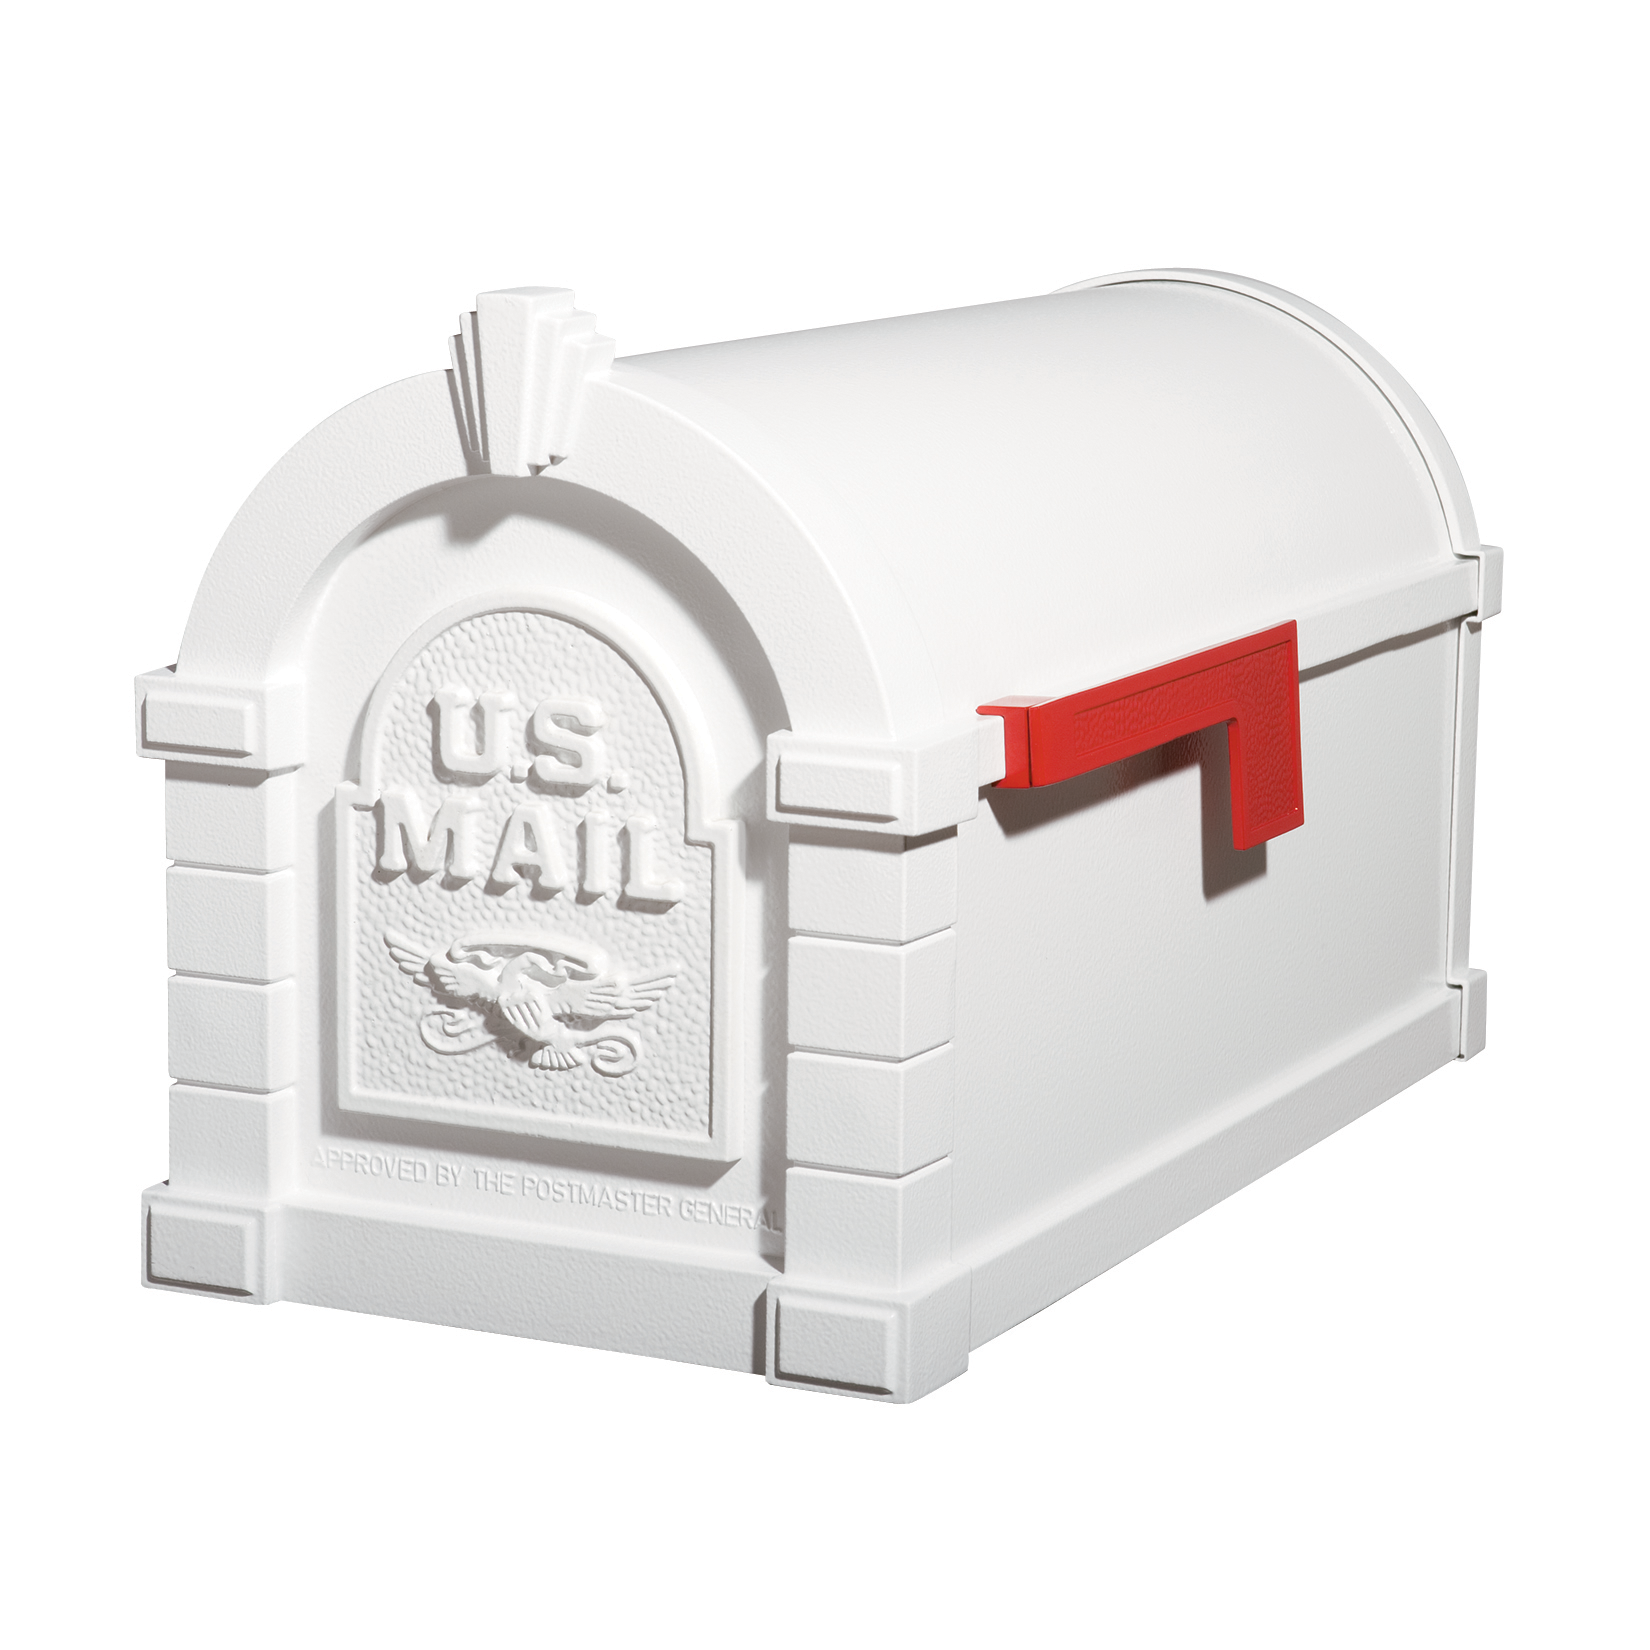 Gaines Eagle Keystone Mailboxes - All White